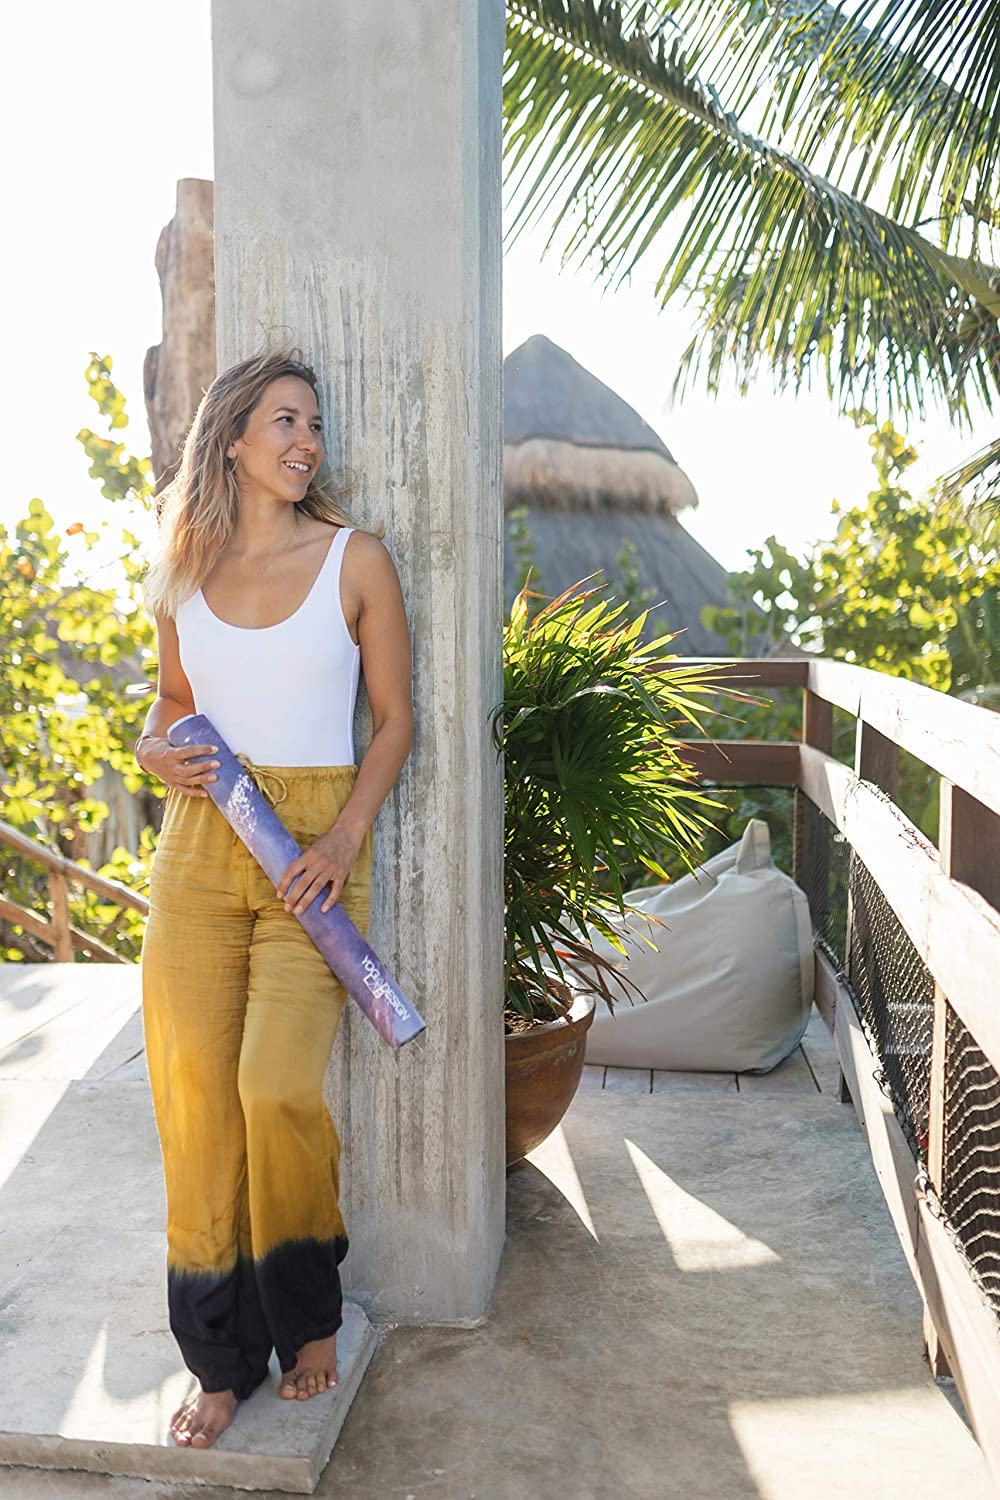 2-in-1 Mat+Towel Foldable Pilates Lightweight 1mm Thick Sweat YOGA DESIGN LAB Ideal for Hot Yoga Includes Carrying Strap! Barre The Travel Yoga Mat Bikram Eco Luxury